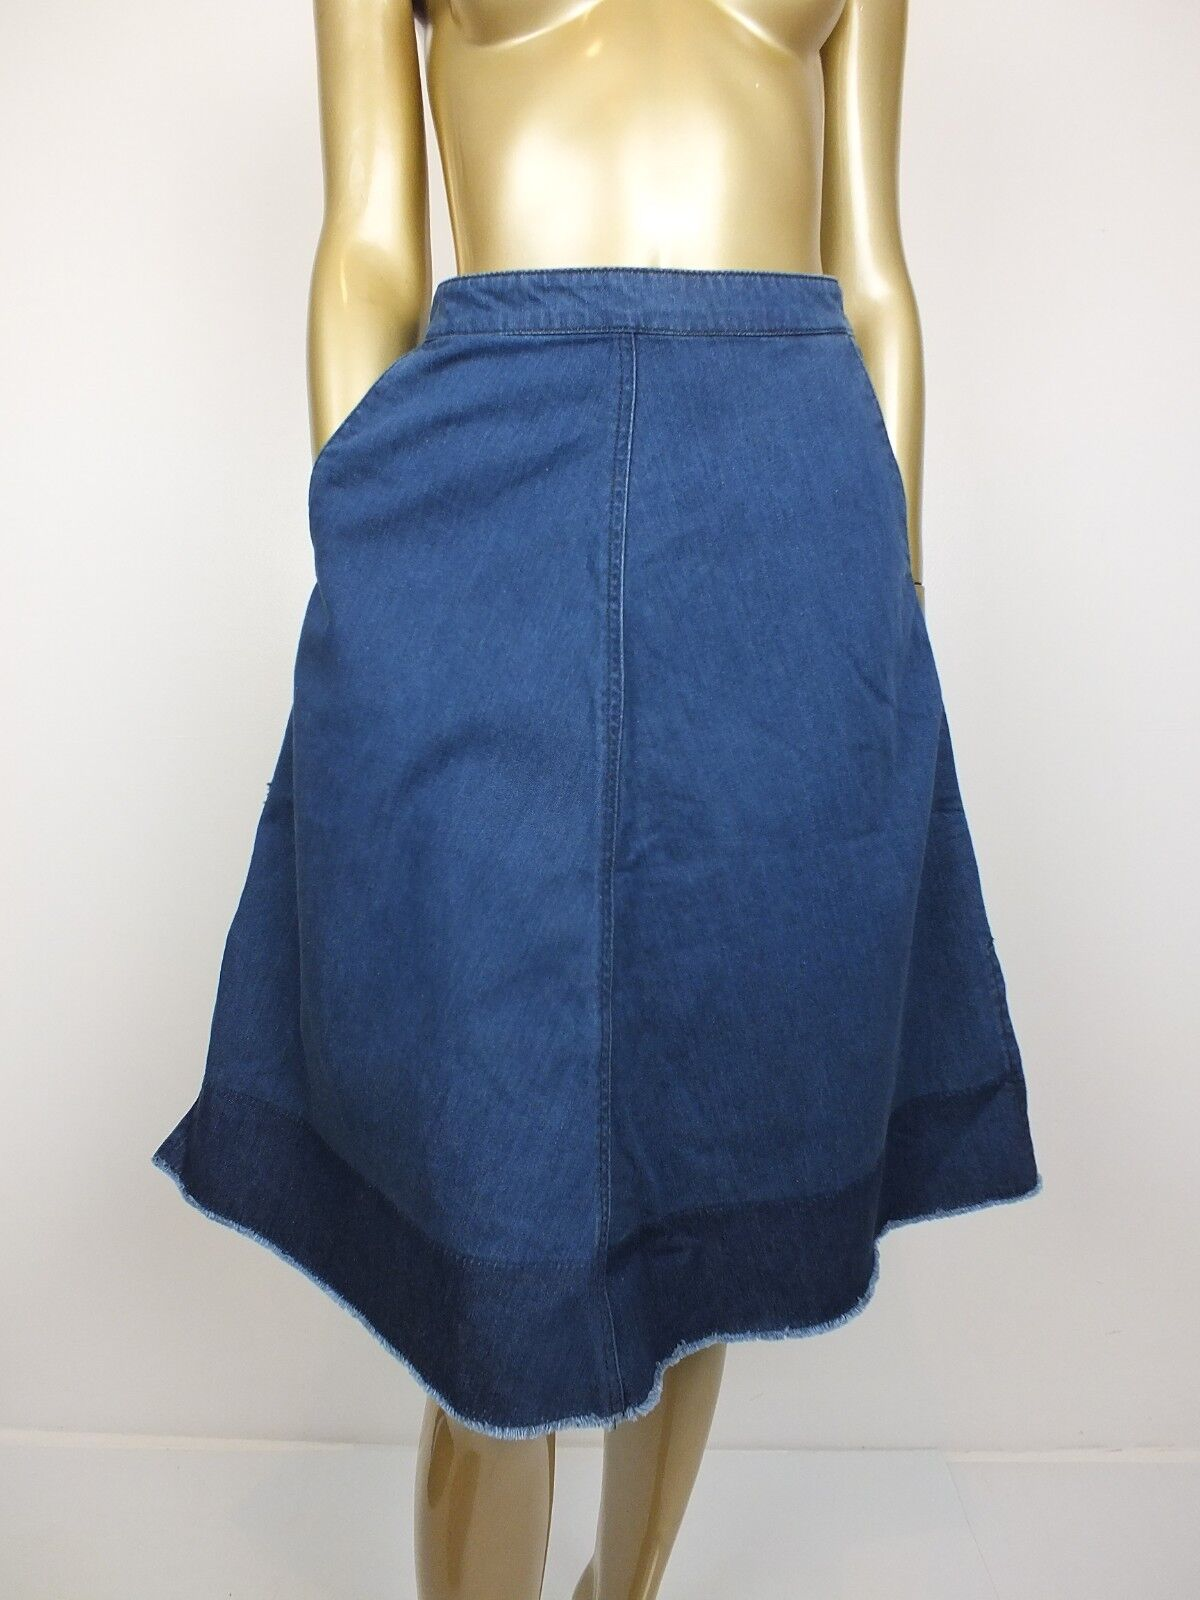 COUNTRY ROAD SKIRT A LINE blueE DENIM  JEANS SKIRT - 100% COTTON - 4